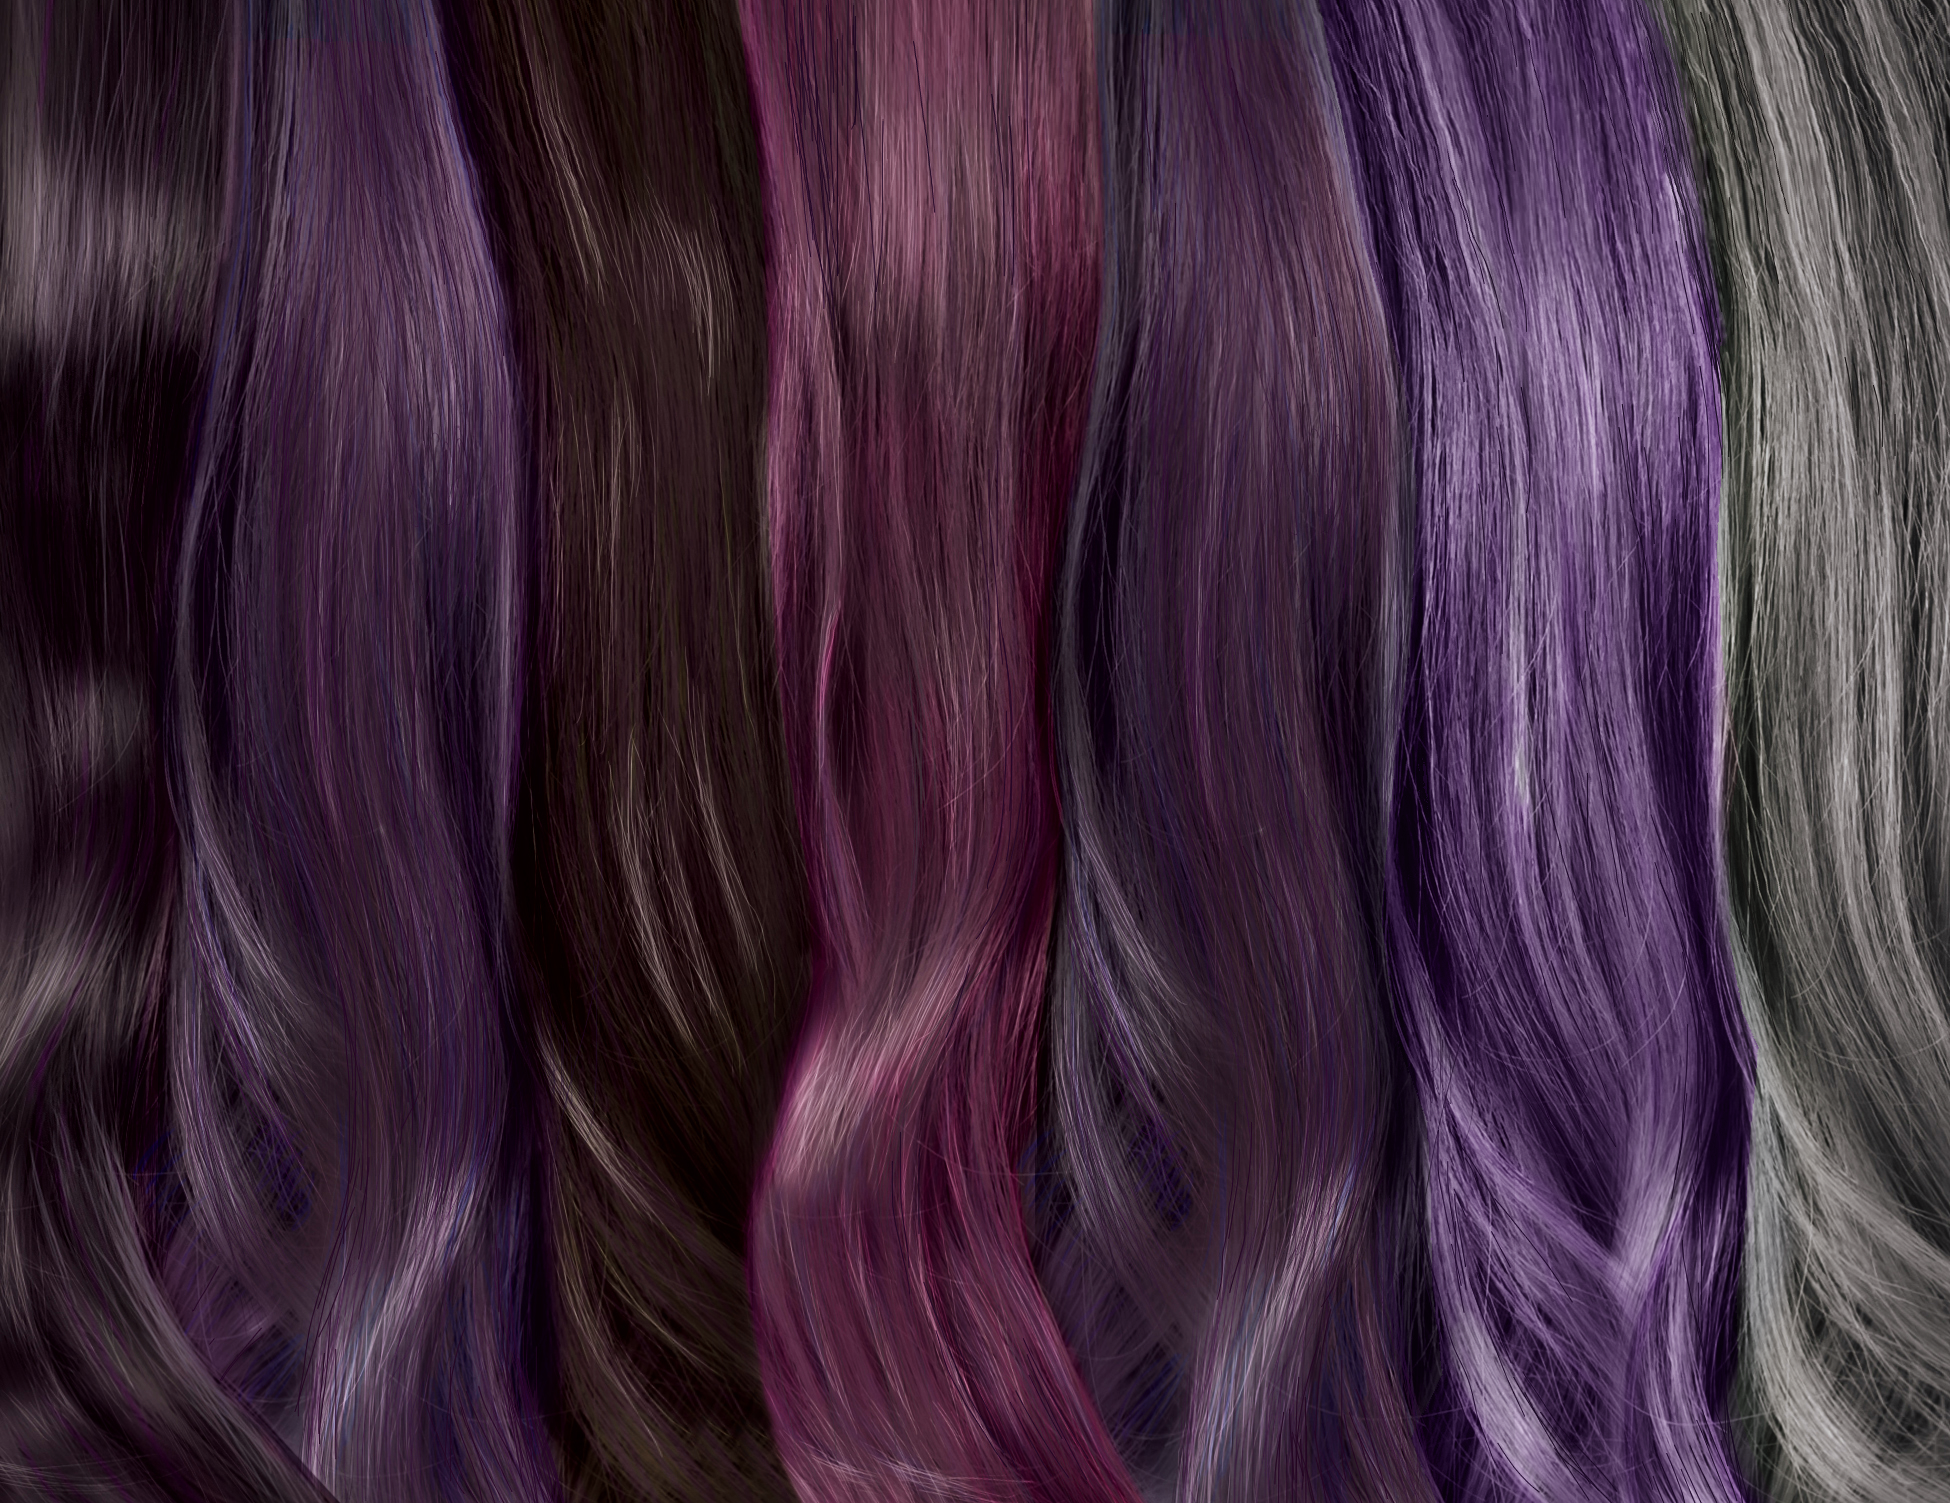 Achieve The Long Lasting Shiny Results You Expect With Ion Color Brilliance In New Trendy Violet Shades Ion Hair Colors Hair Color Chart Ion Hair Color Chart